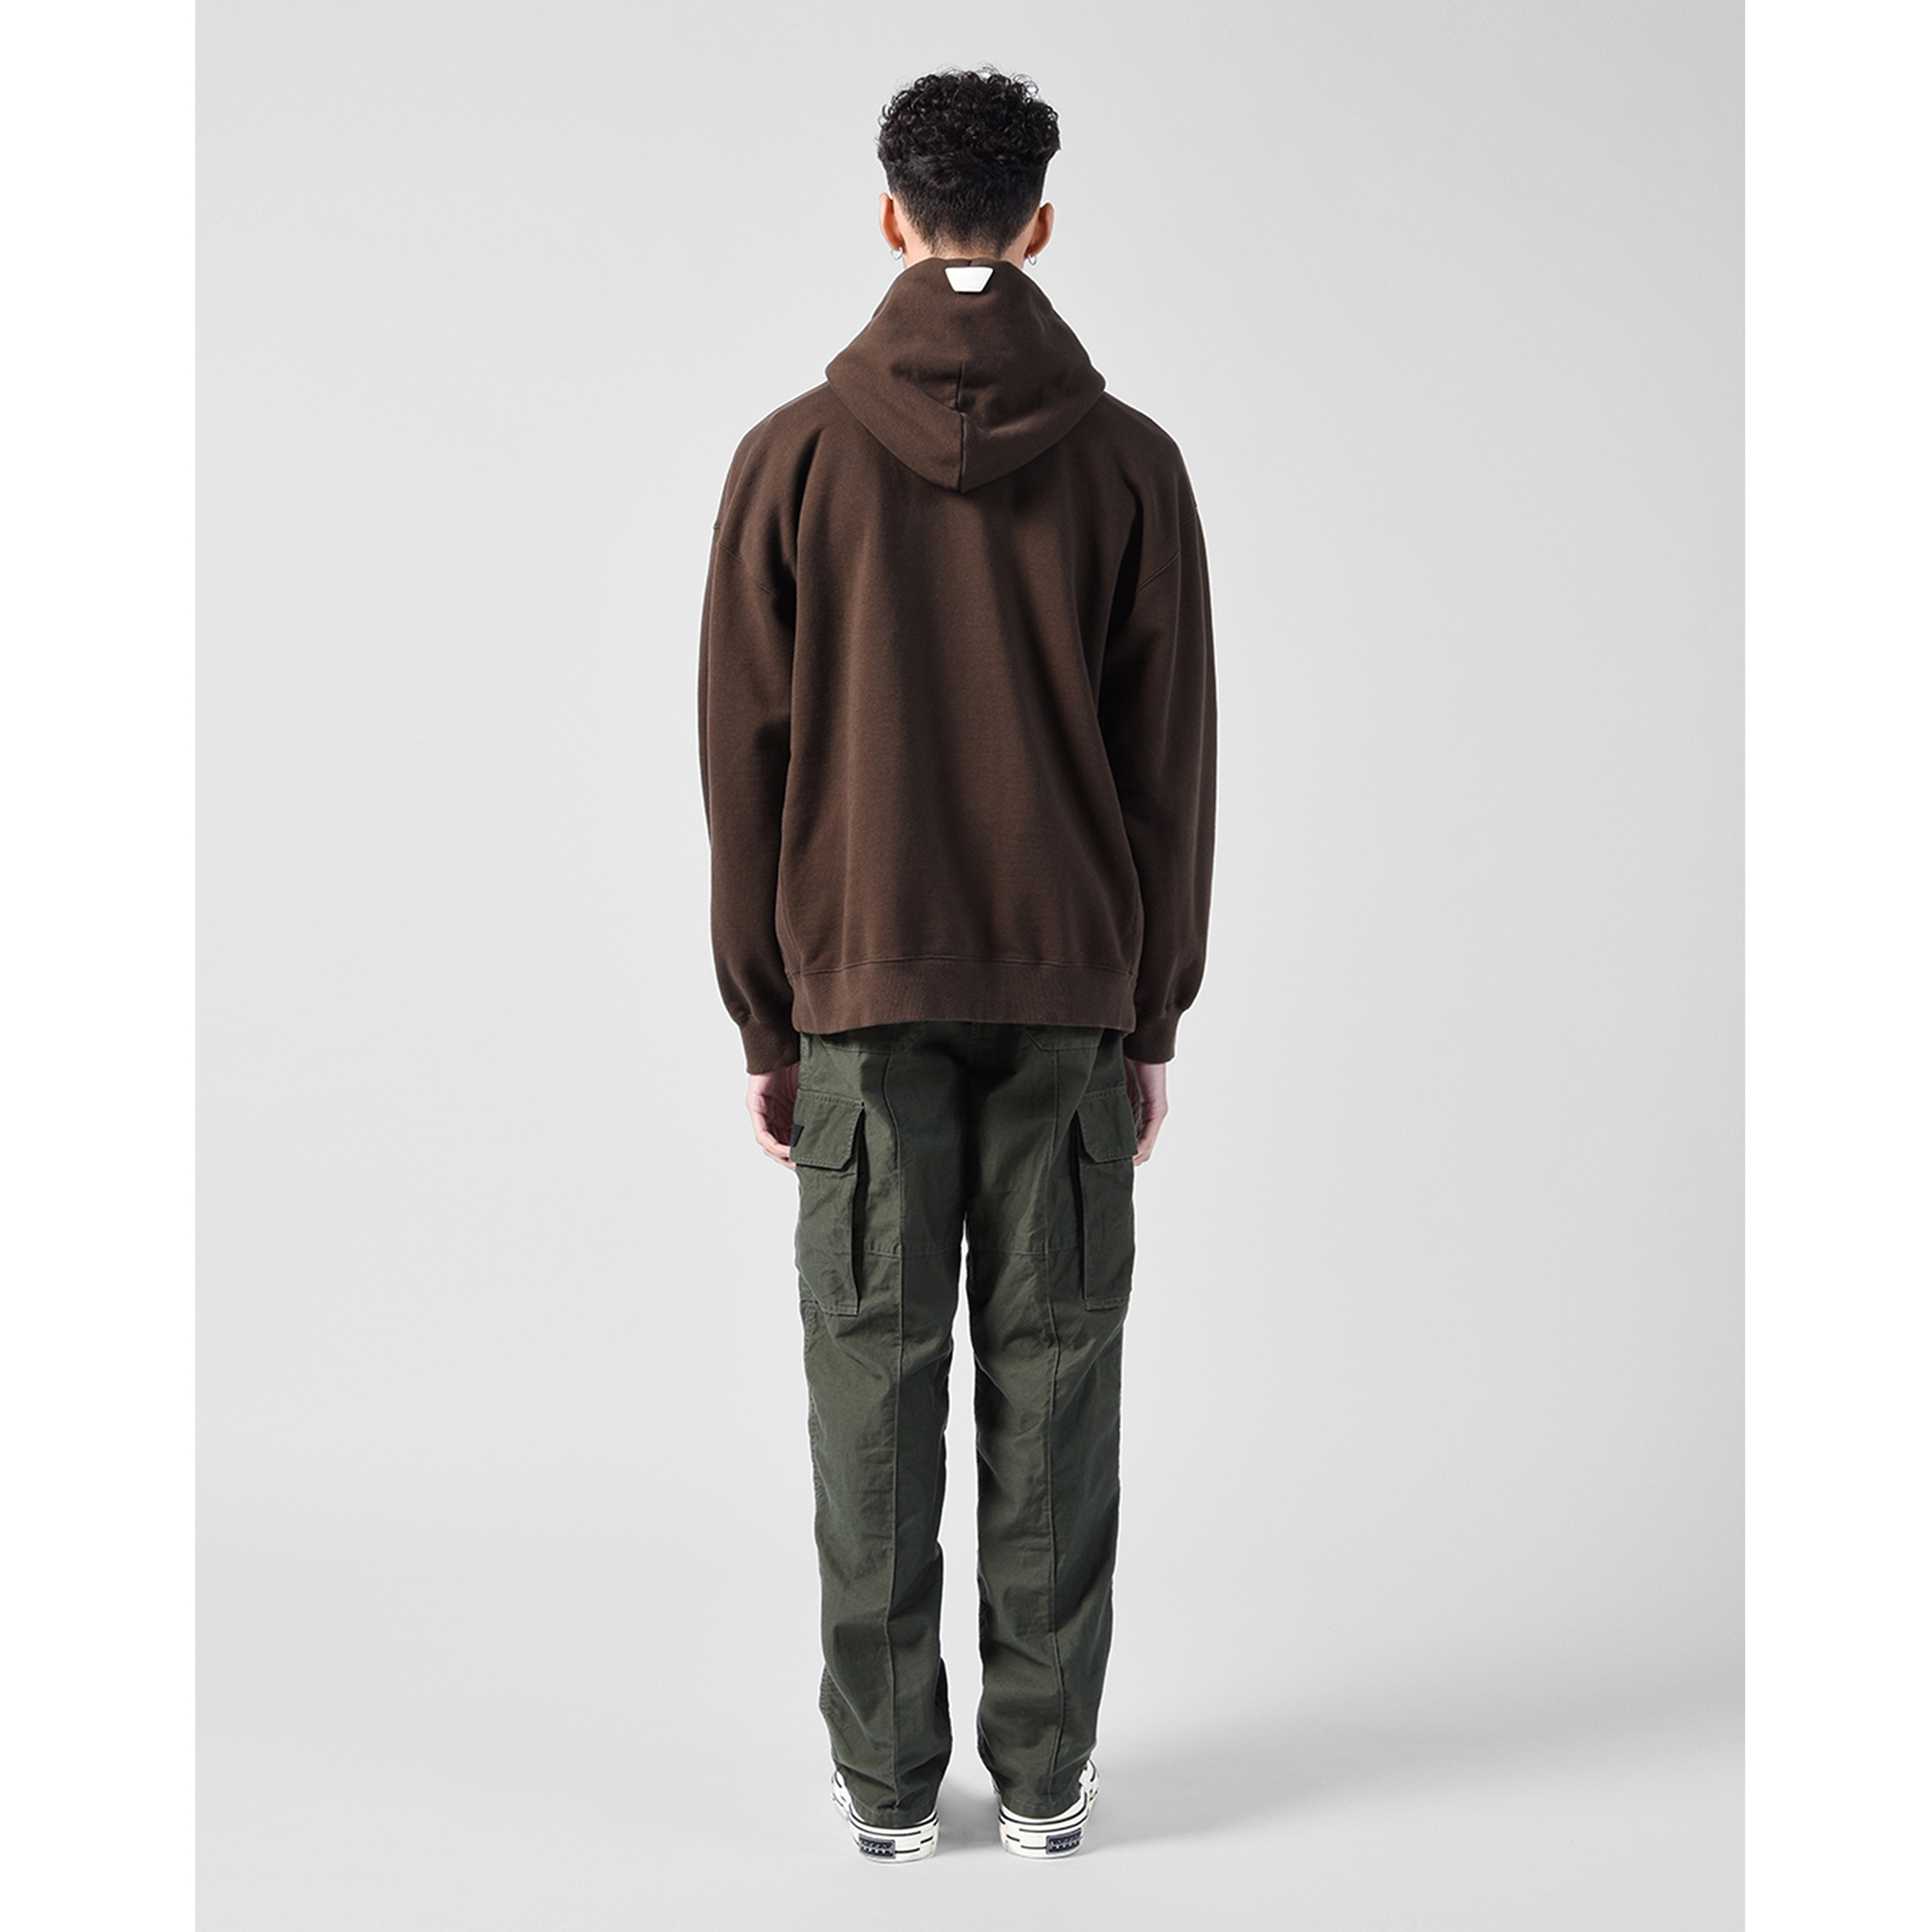 FSO EMBRO HOODIE 詳細画像 Brown 3